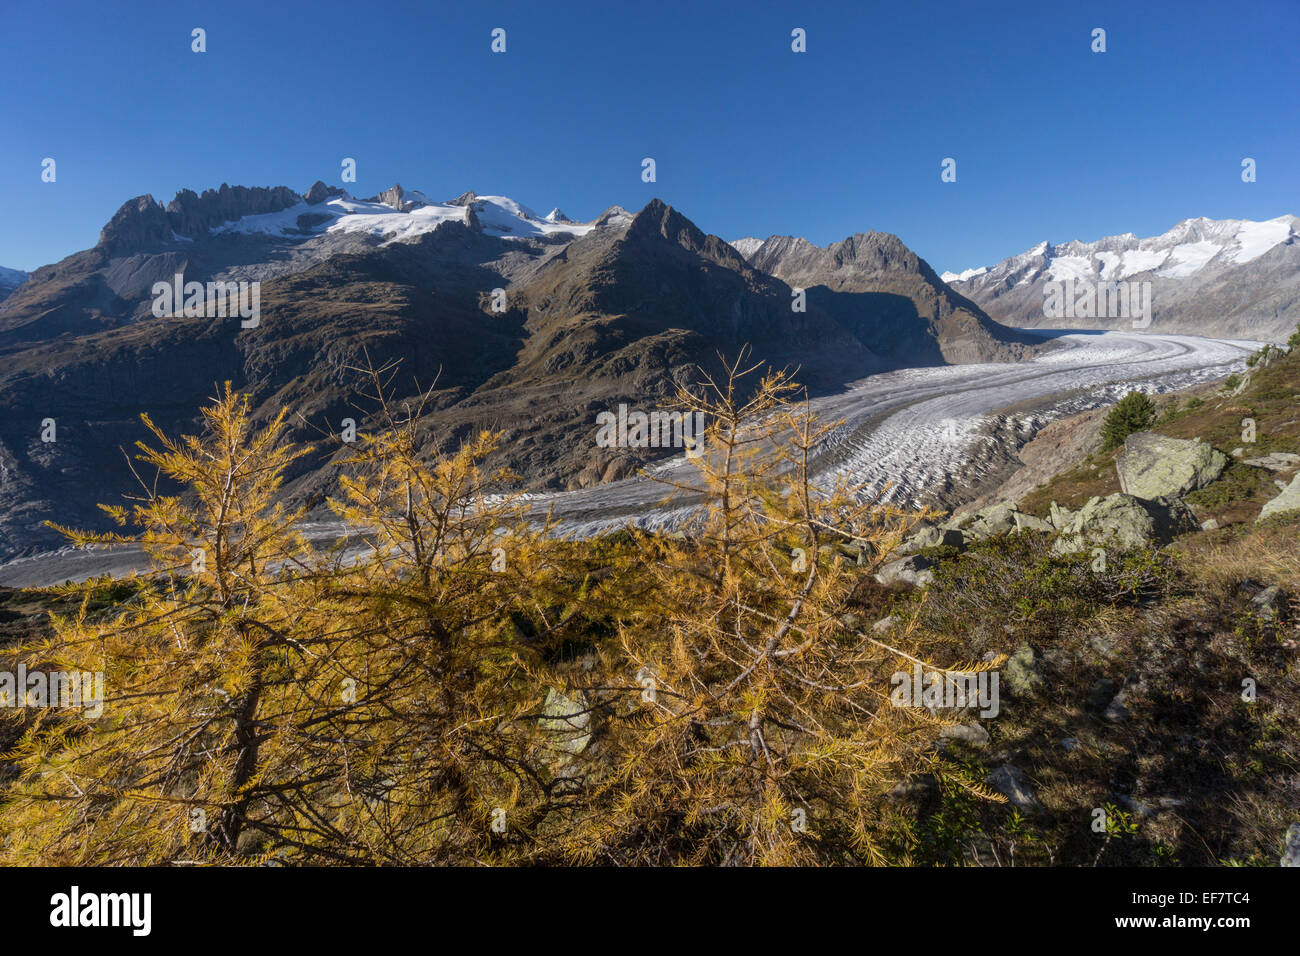 Panorama of the Aletsch Glacier in Autumn, Melting Glacier, Swiss Alps, Switzerland - Stock Image